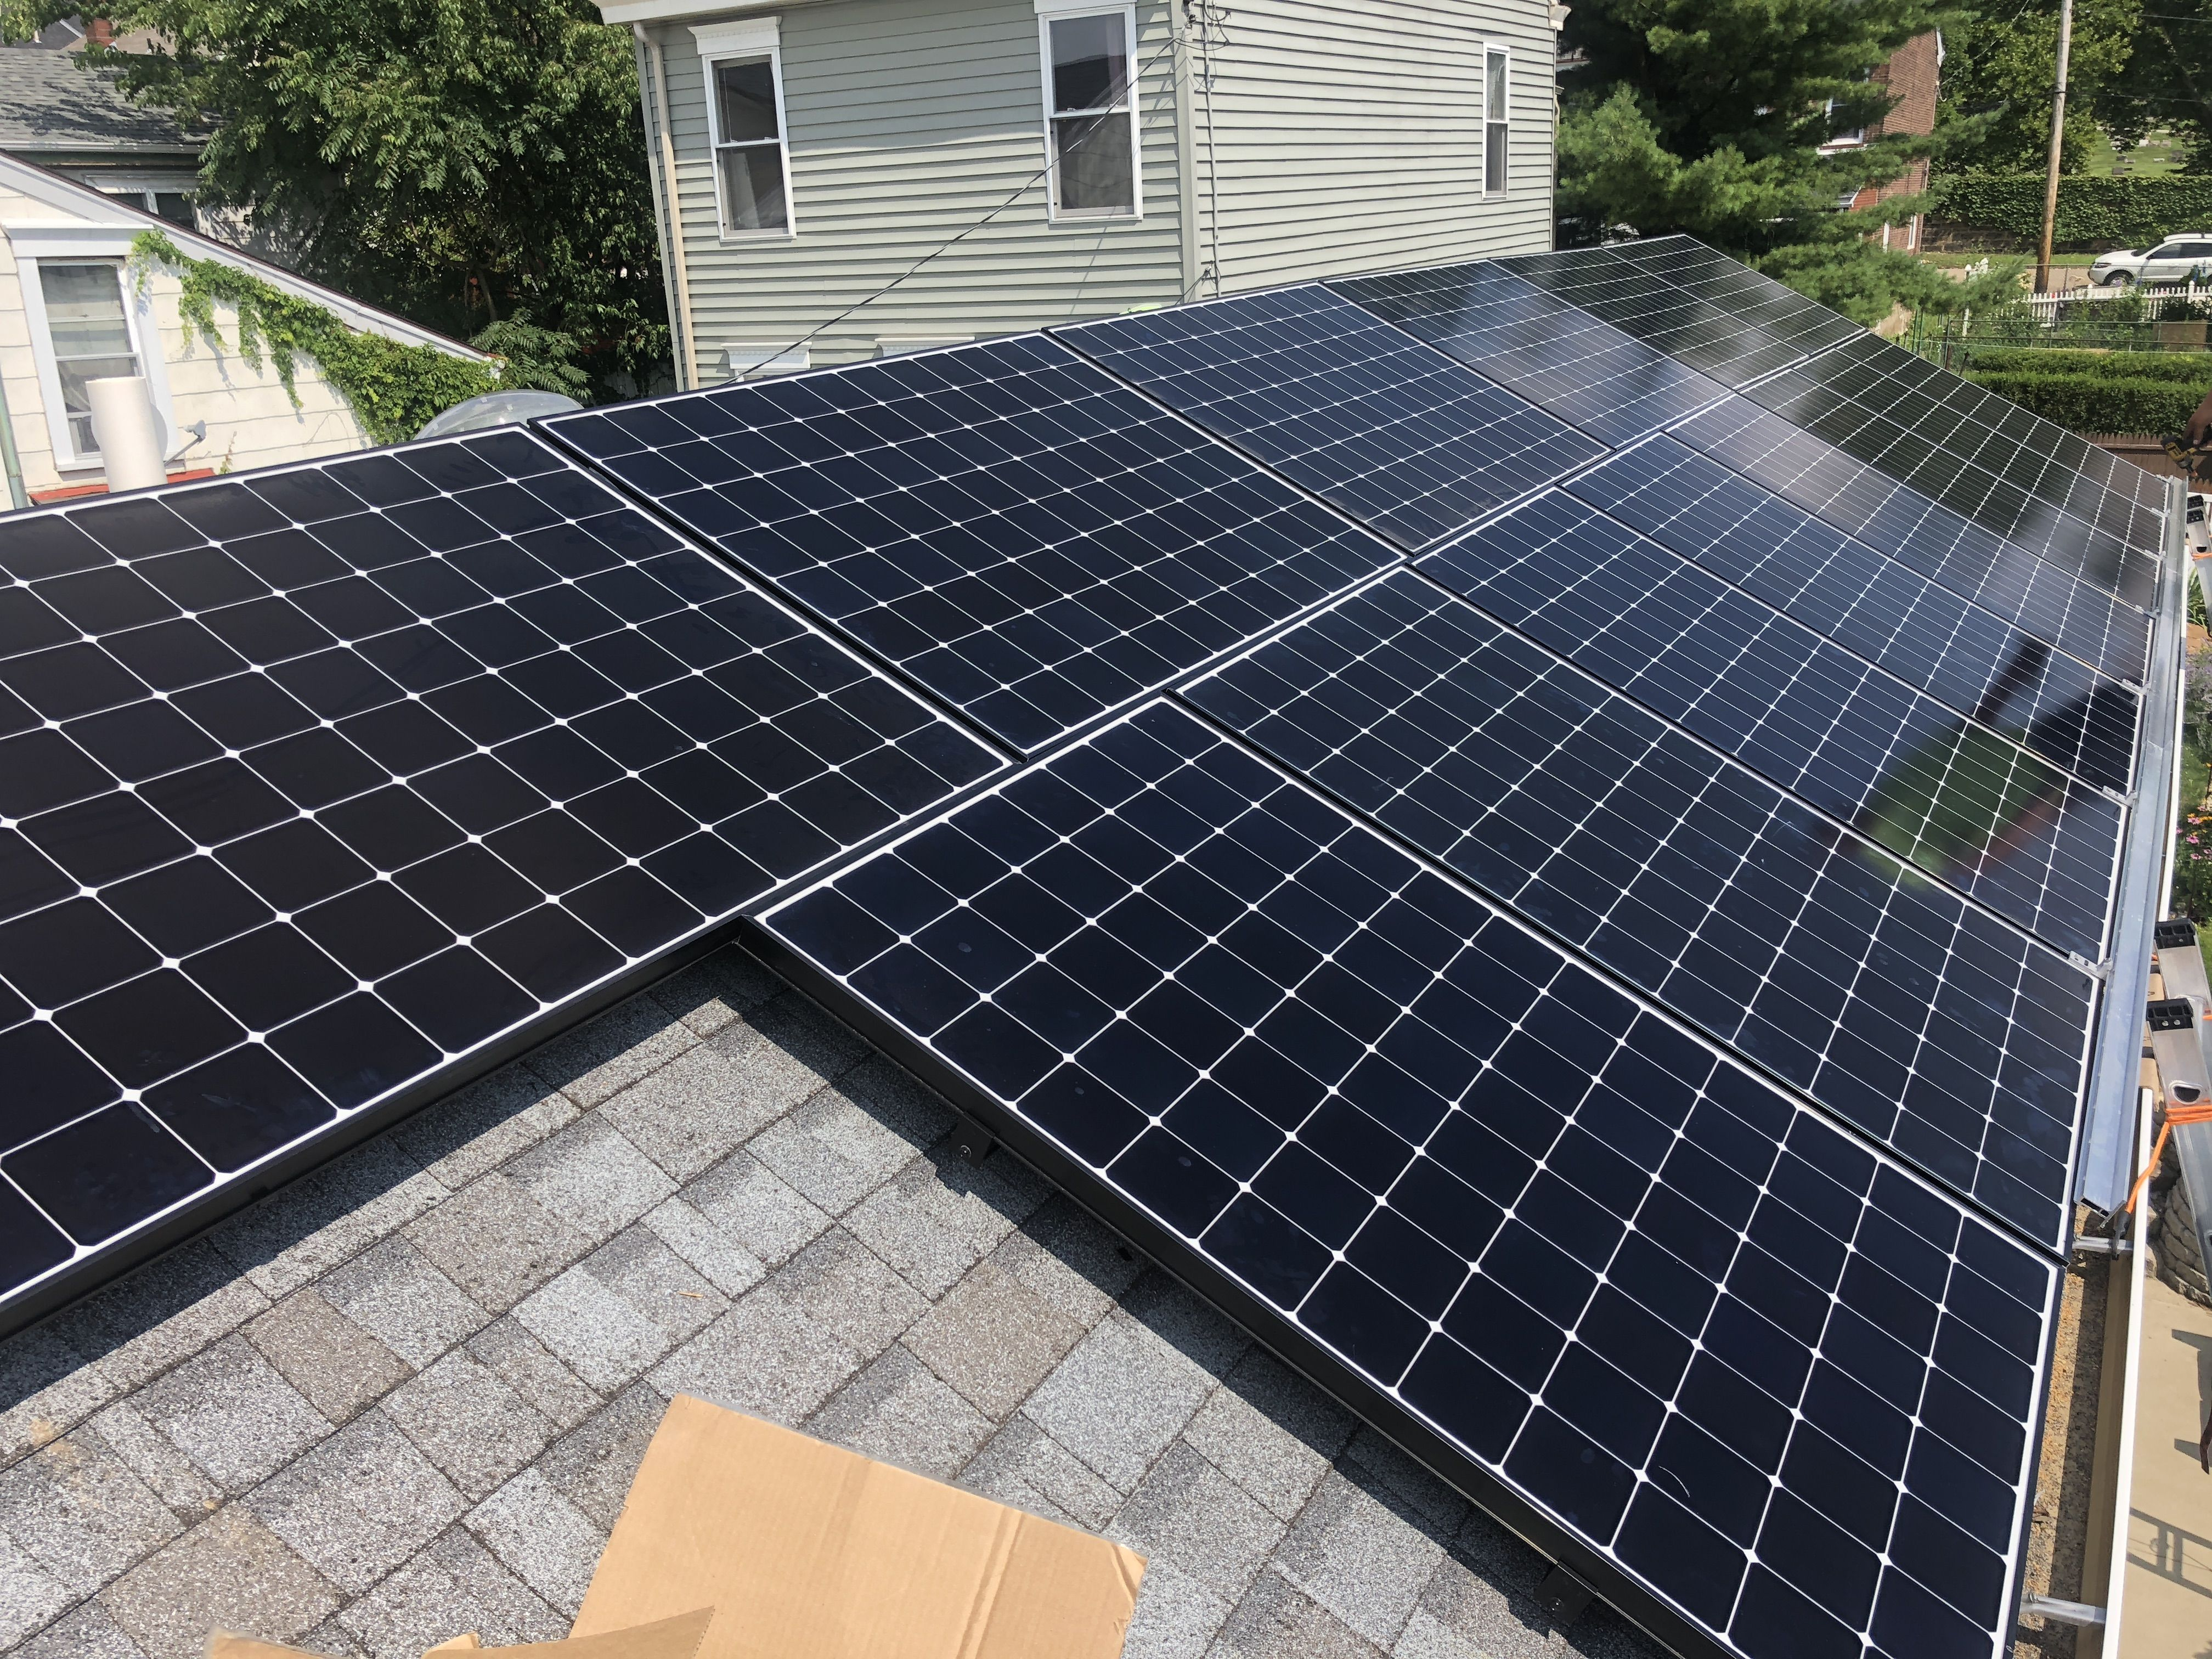 This New System Was Installed In Lawrenceville It Has The Capability To Produce Over 5 800 Kwh Annually Based On Total U Solar Solar Panels Residential Solar